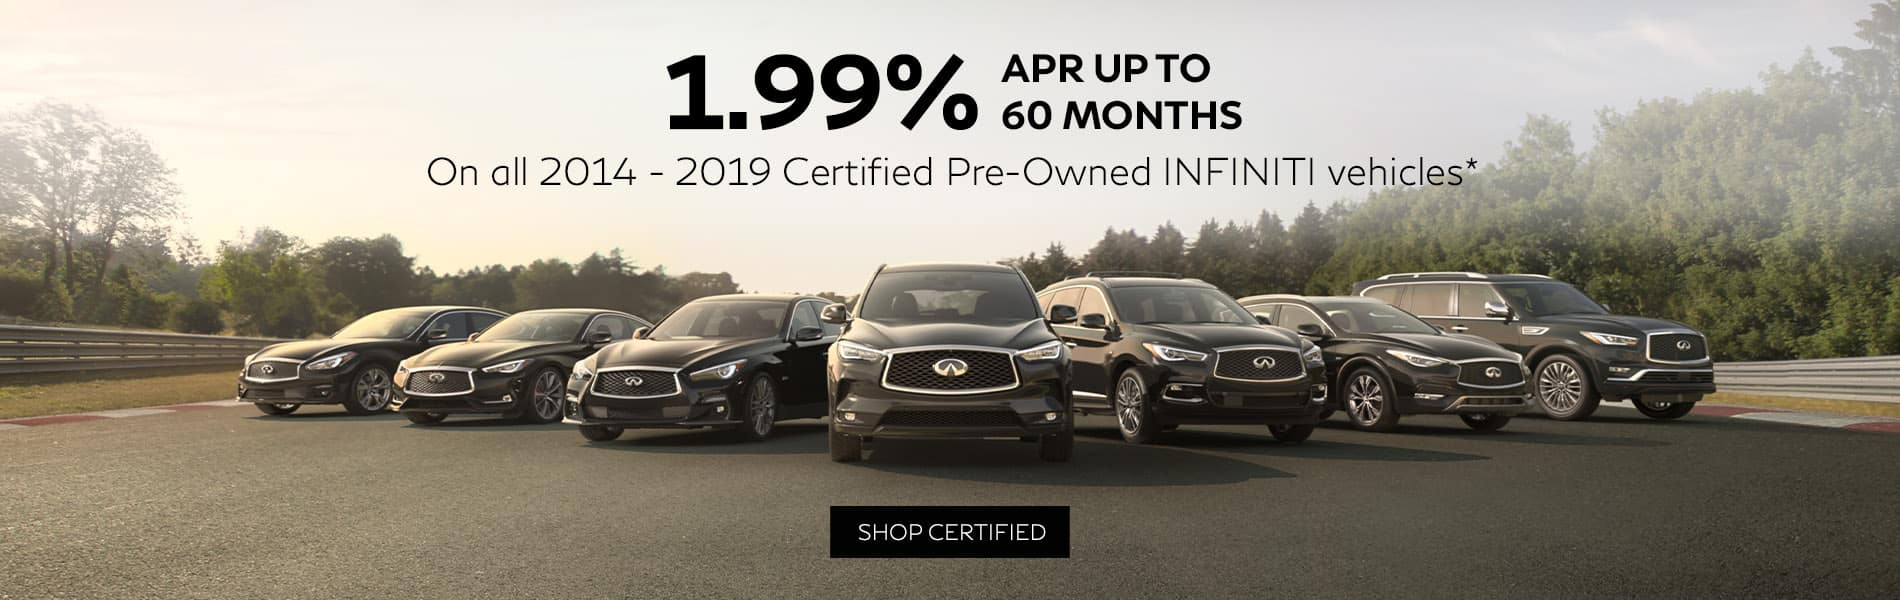 Right get 1.99% APR up to 60 months on all 2014 to 2019 INFINITI Certified Pre-Owned vehicles.